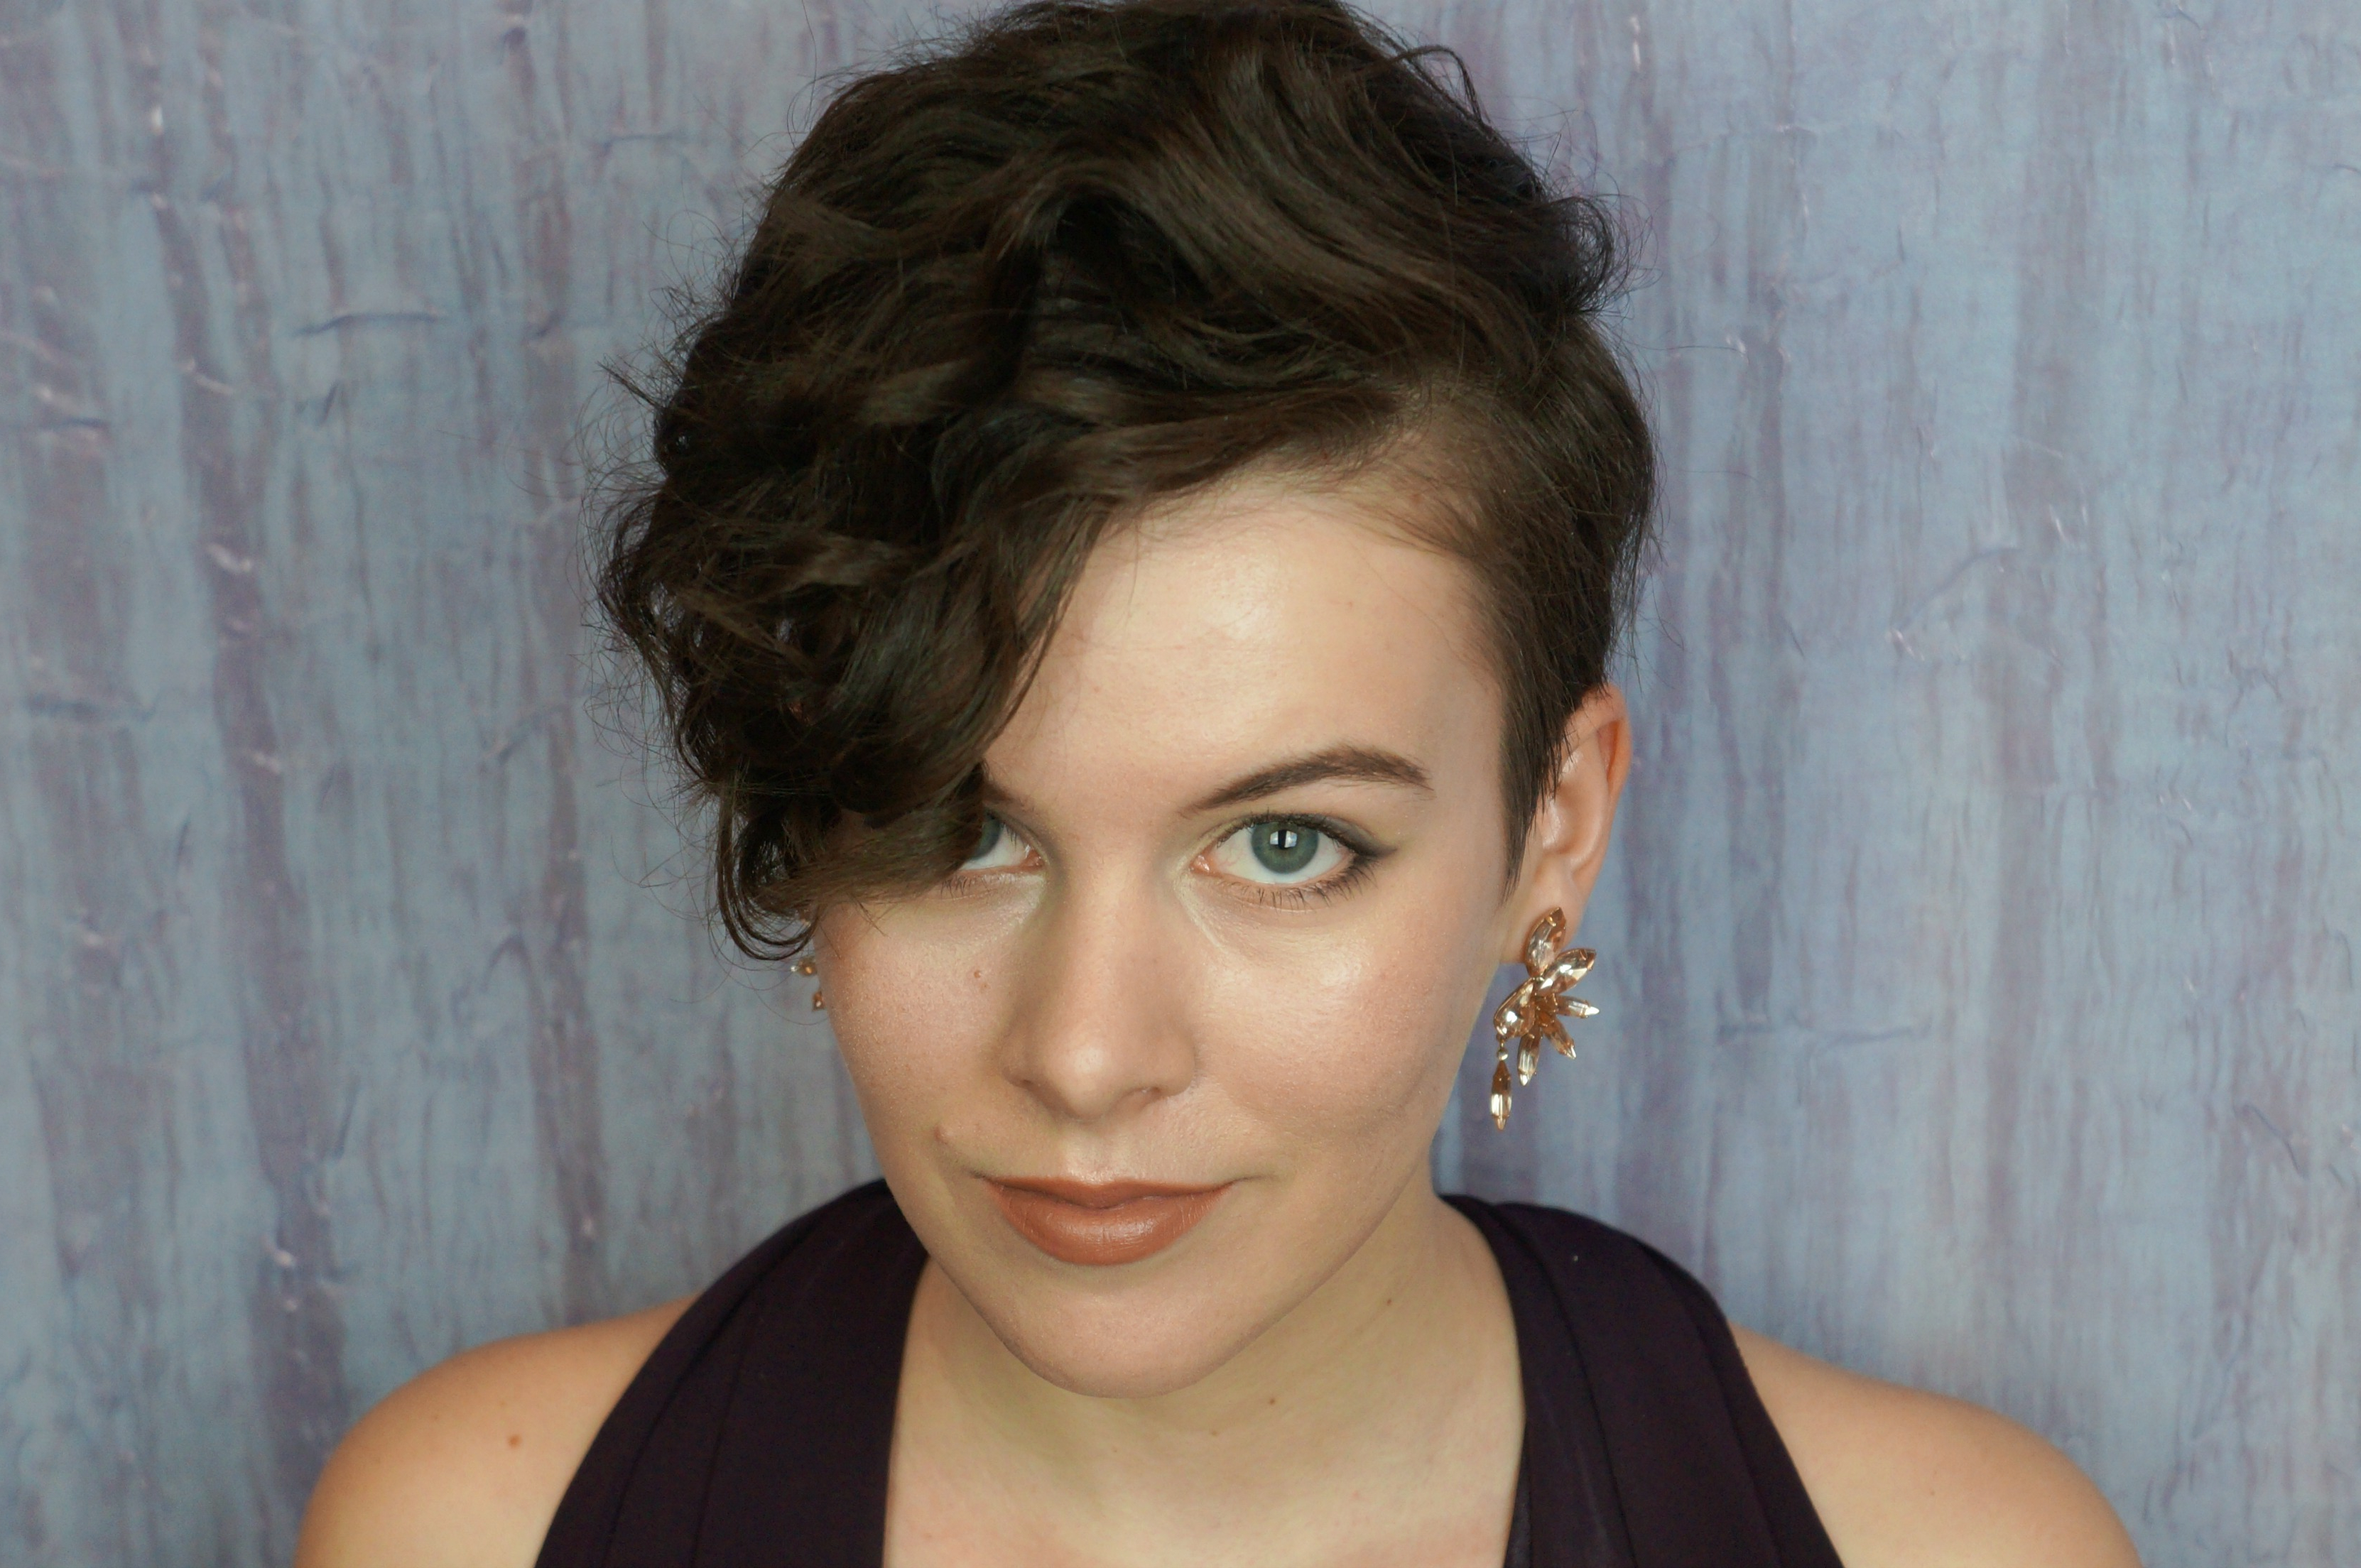 4 Short Hairstyles For Prom That Prove Pixie Cuts Can Be Extremely Glam Within Short Hairstyles For Prom (View 21 of 25)